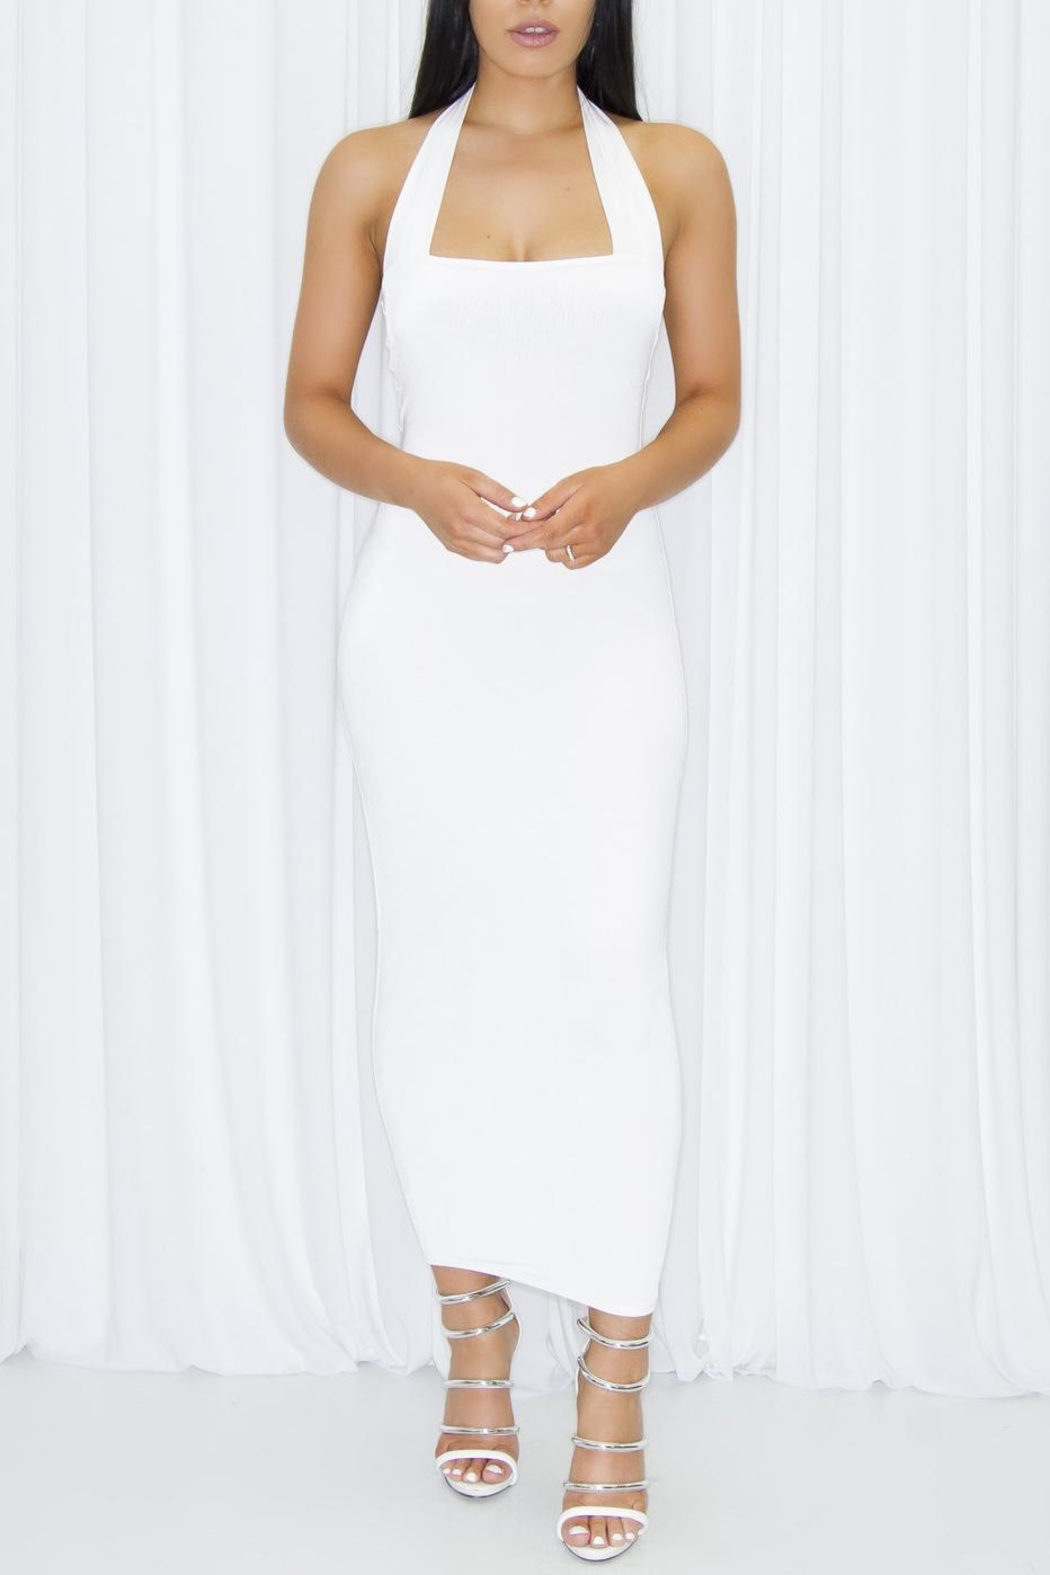 DBL Margot White Dress - Main Image